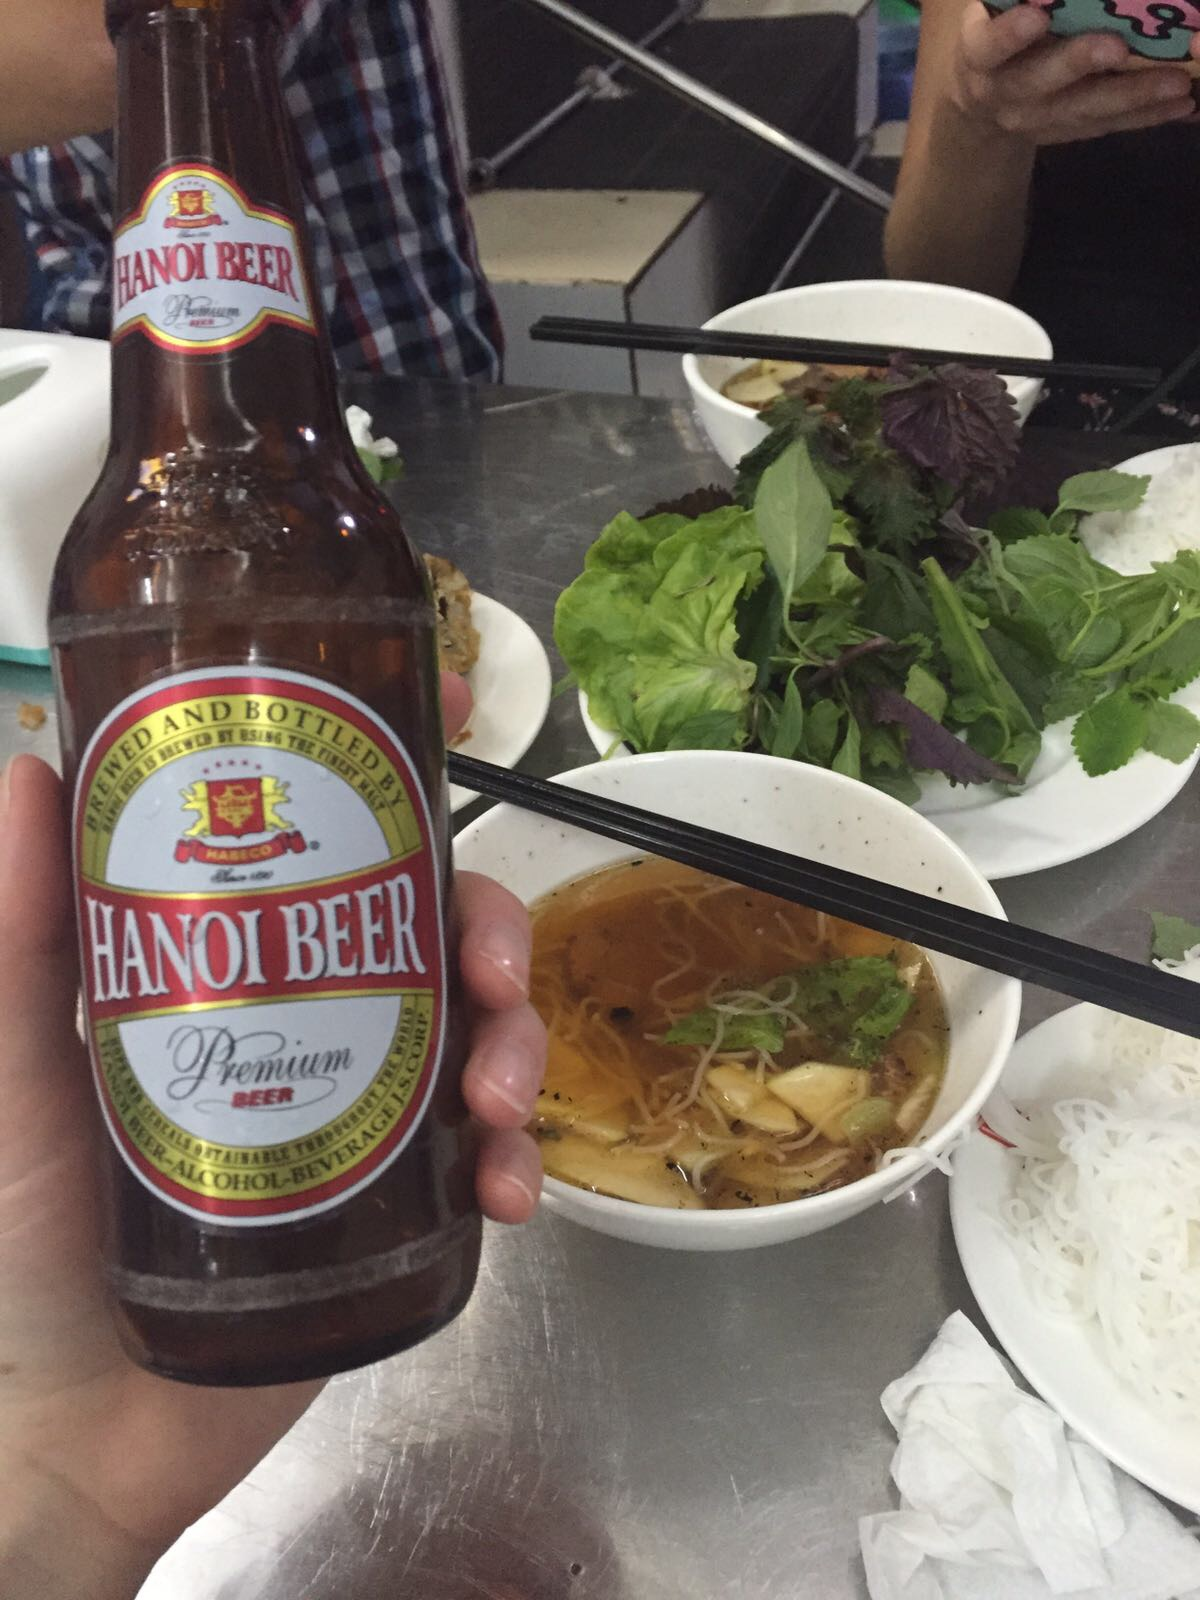 Part of the Obama combo was a local beer called, that's right, Hanoi Beer.  Thanks Obama! Good choice!